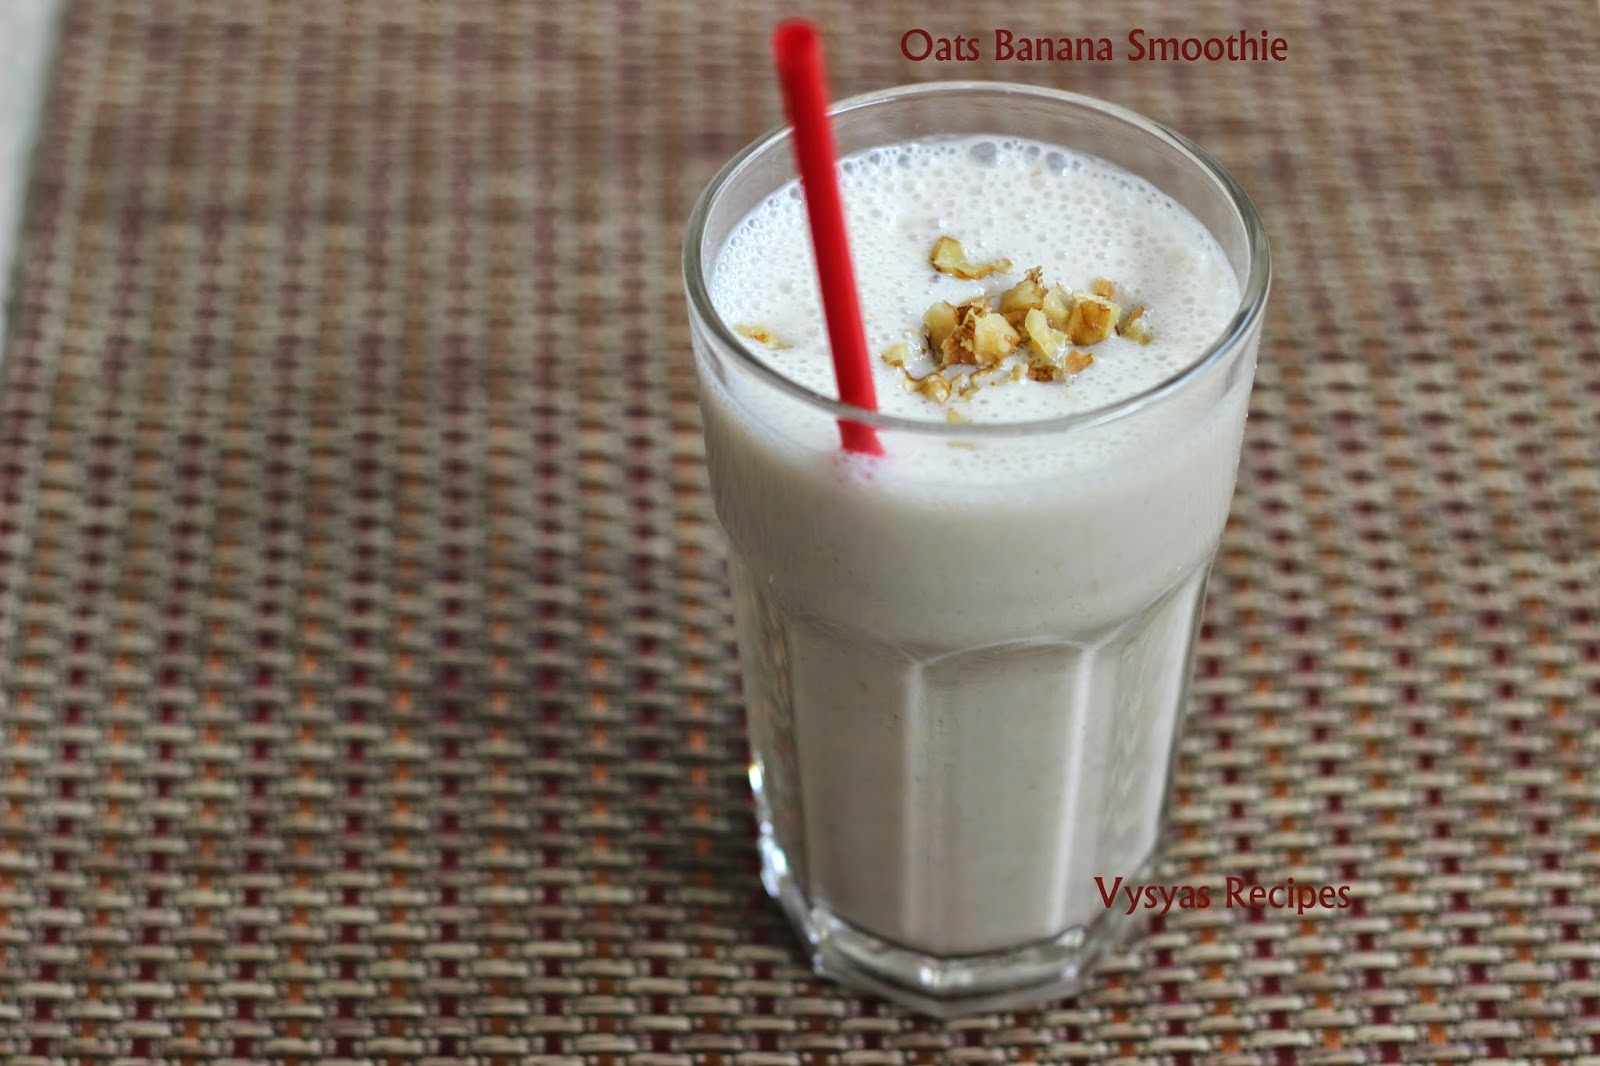 Oats banana smoothie